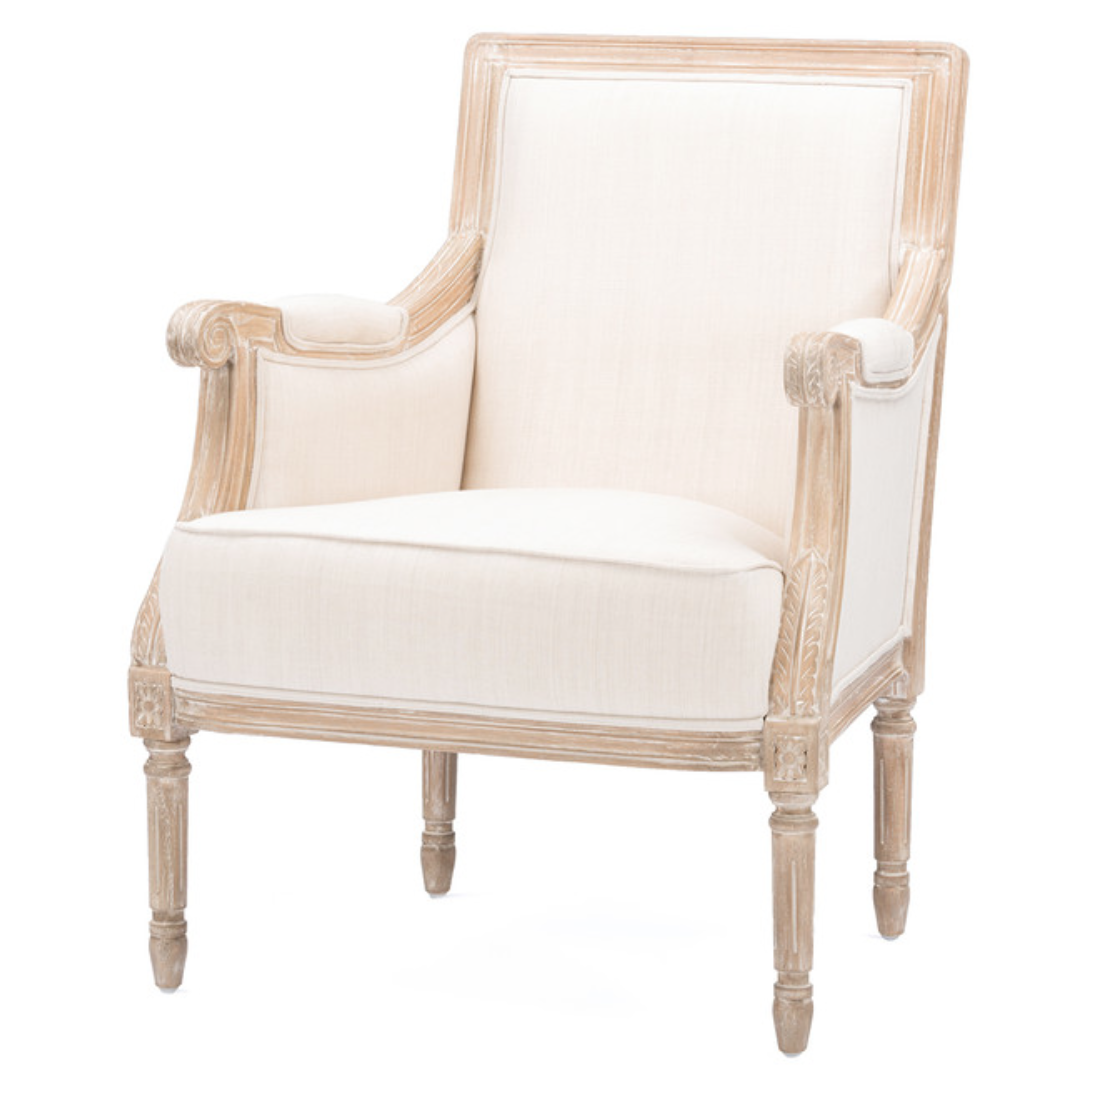 French Chairs to Buy: 10+ Affordable French Country Accent ...